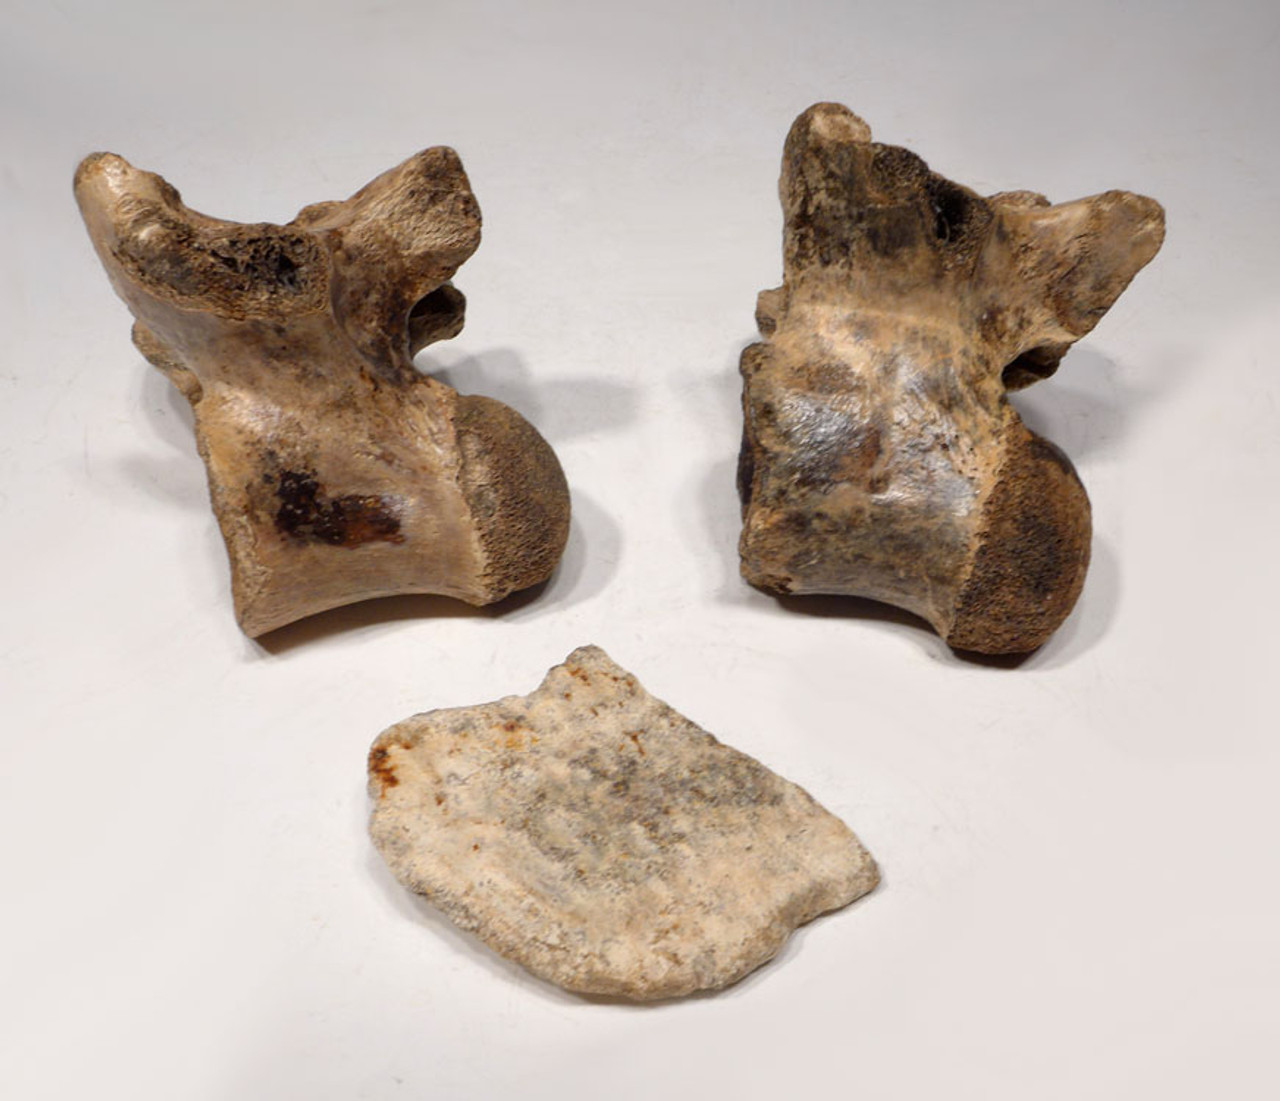 CROC018 - EXTREMELY RARE PAIR OF FOSSIL CROCODILE VERTEBRAE AND ARMOR FROM JAVA MAN DEPOSITS